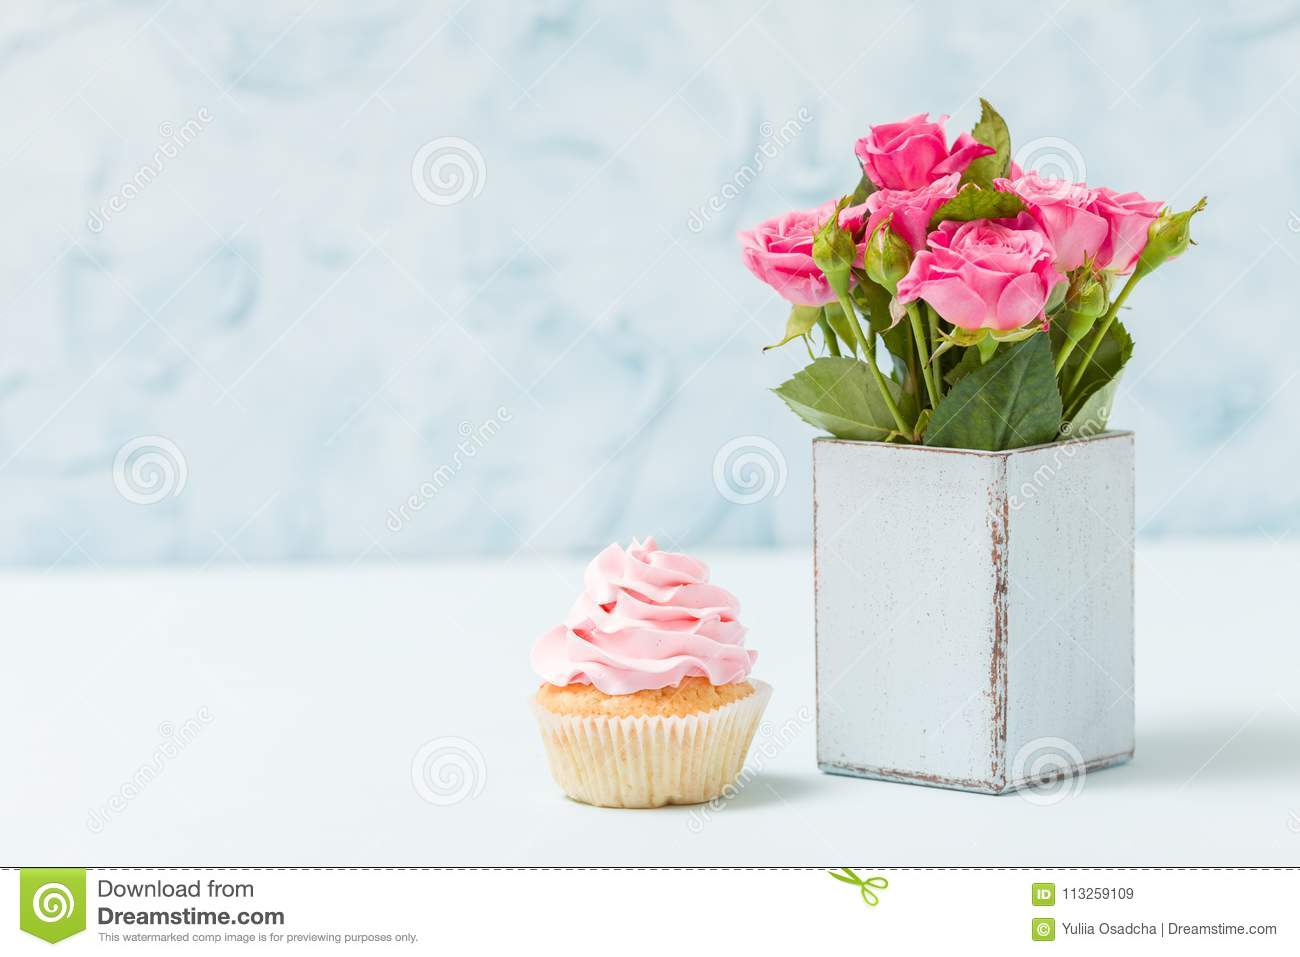 Décoration De Cupcake Cupcake With Cream Decoration And Pink Roses In Retro Shabby Chic